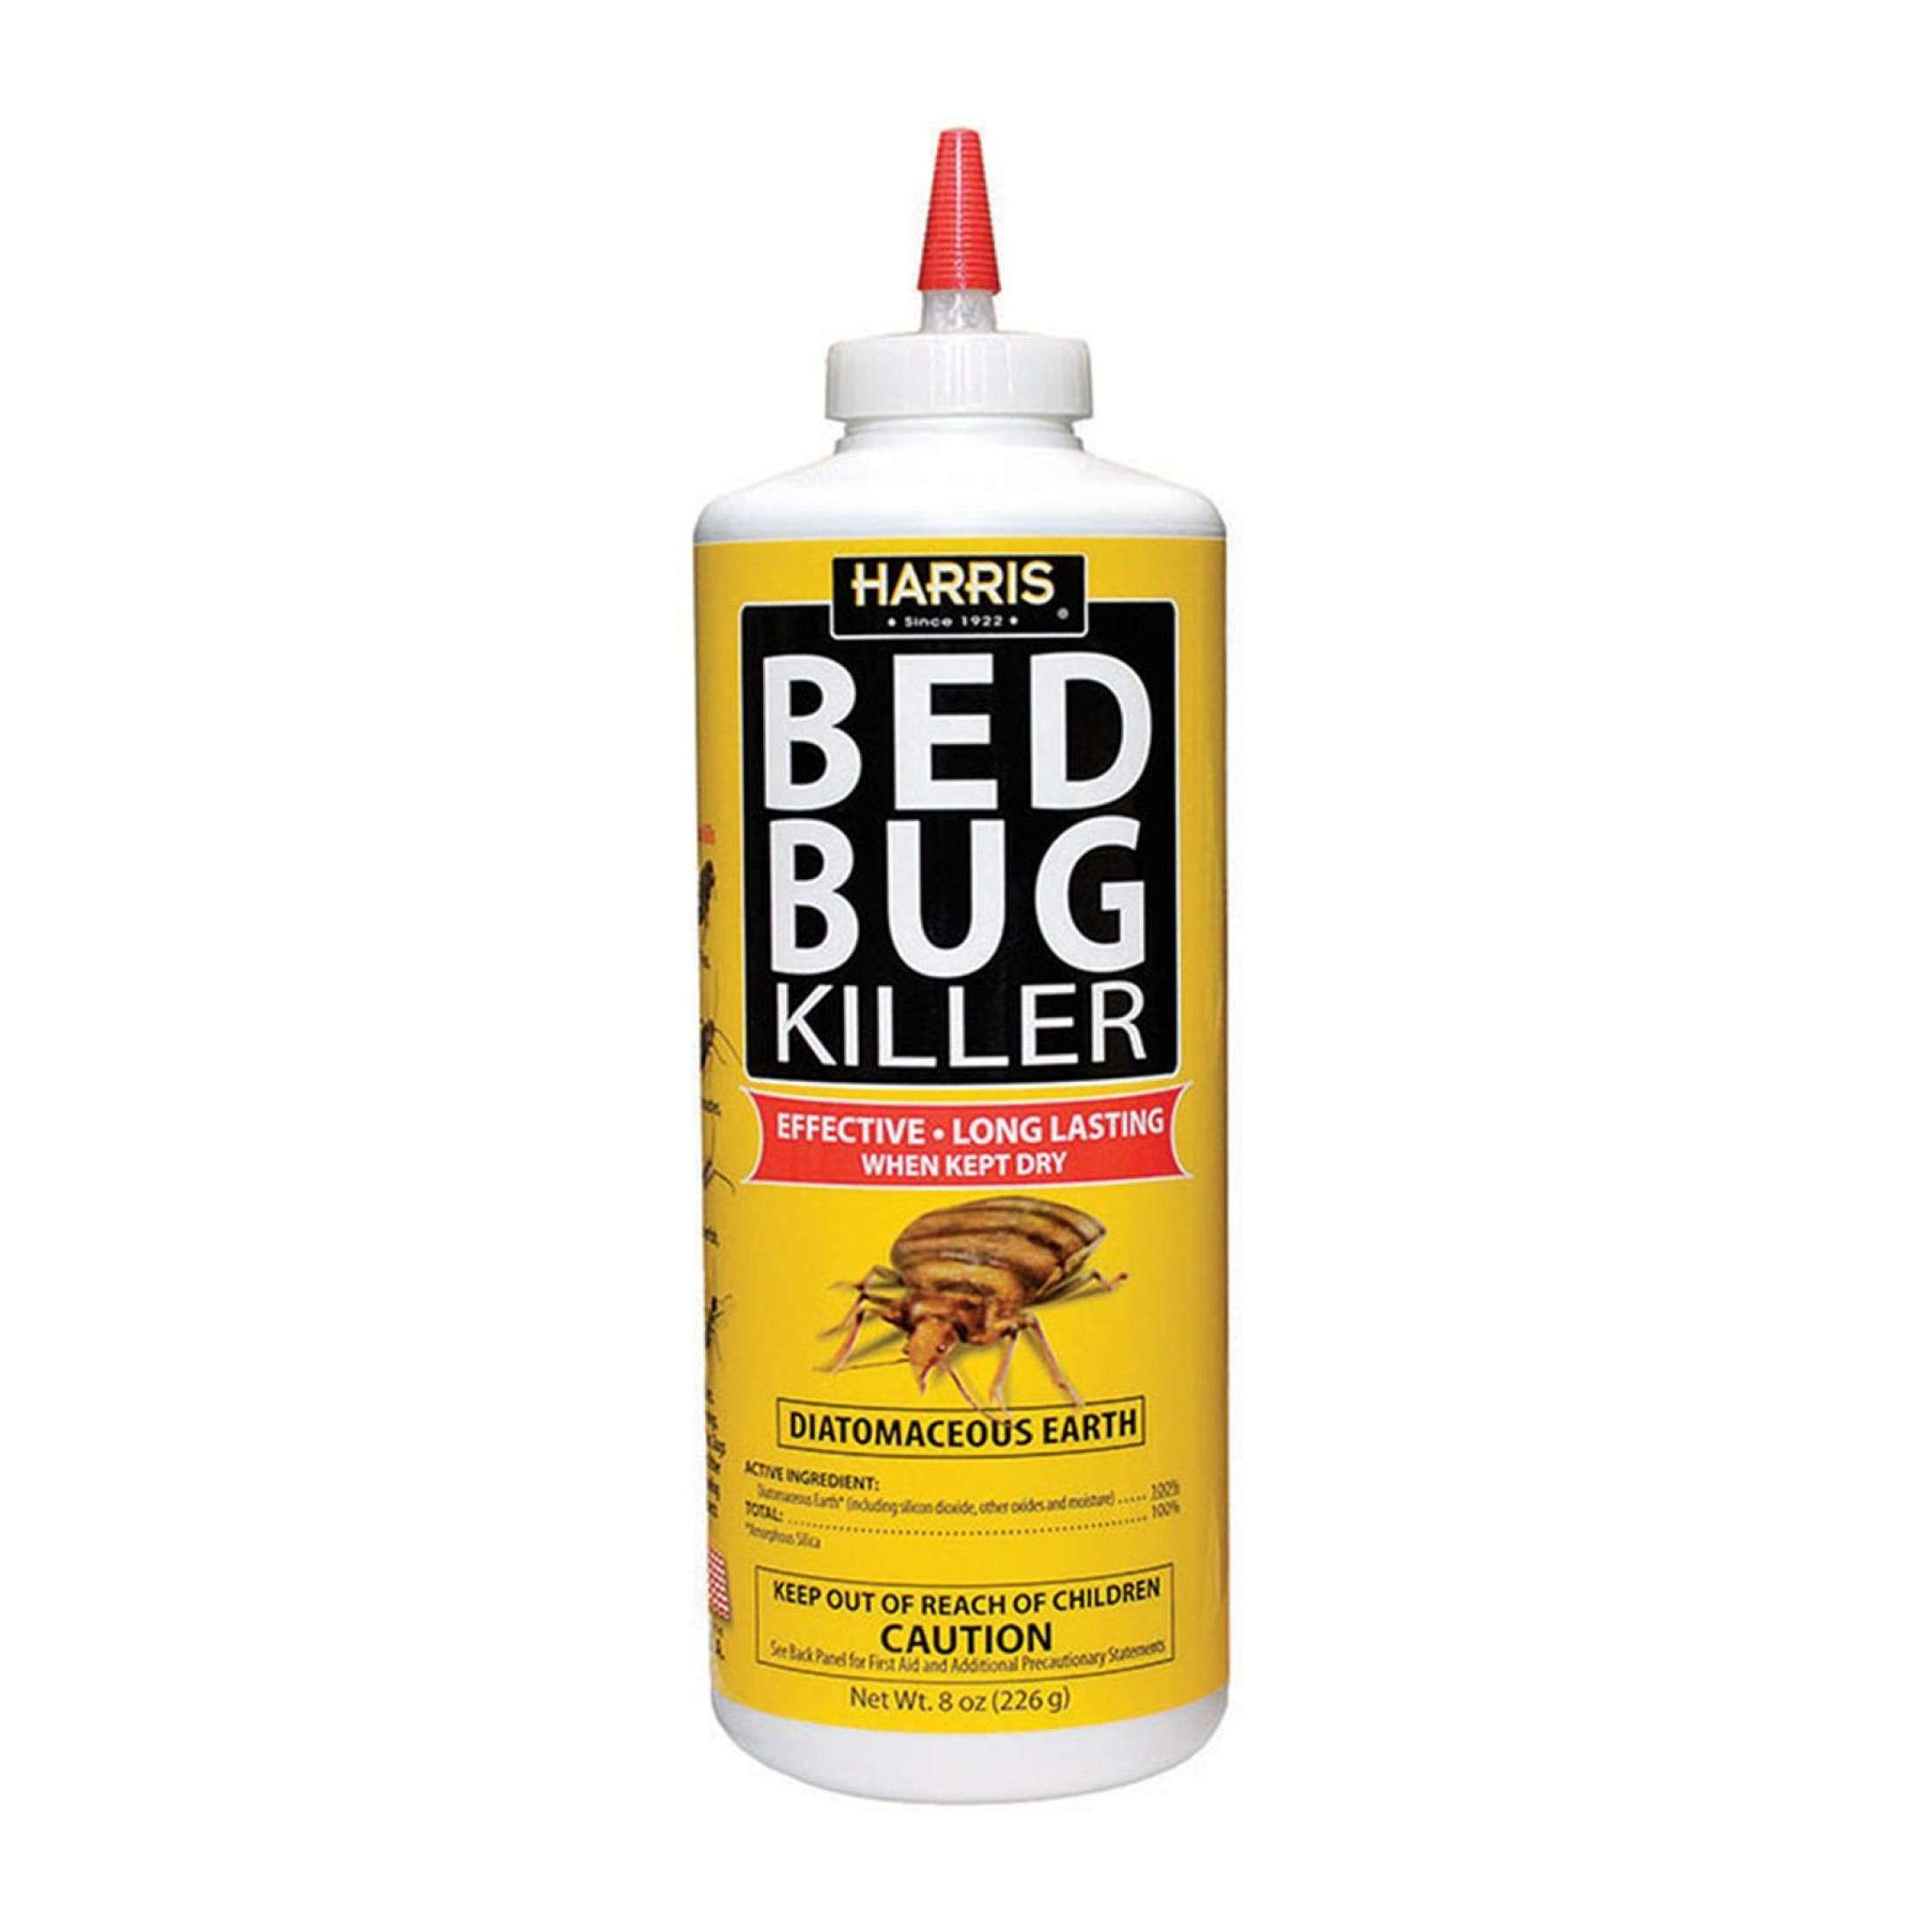 Harris Bed Bug Killer Diatomaceous Earth 8oz - Kills Bedbug adults, nymphs and hatchlings - Made in USA